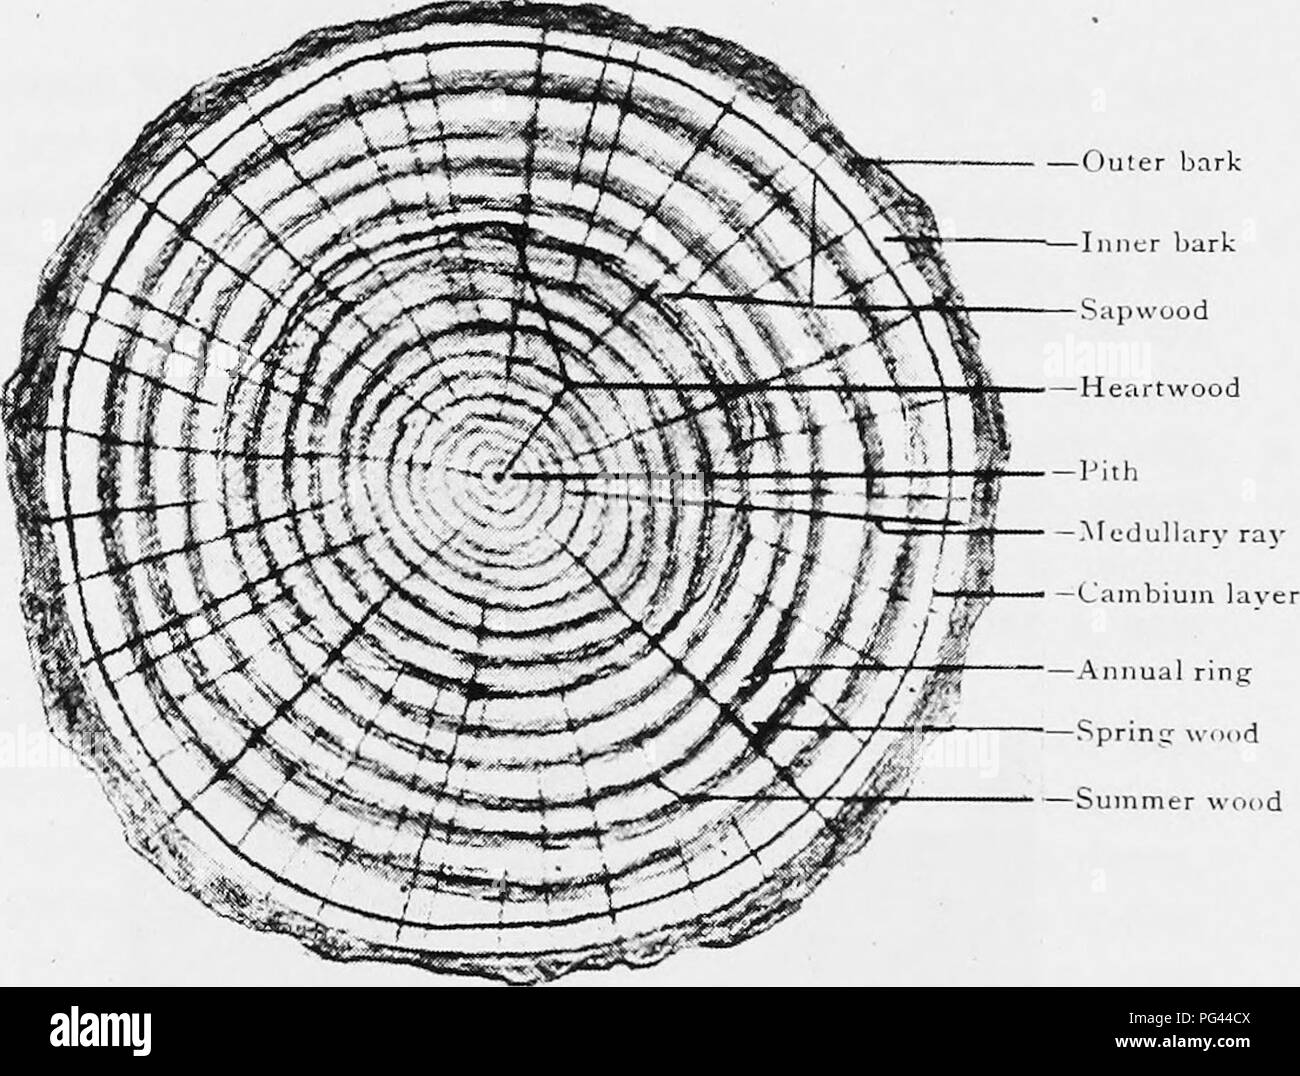 Parts Of A Tree Trunk Diagram